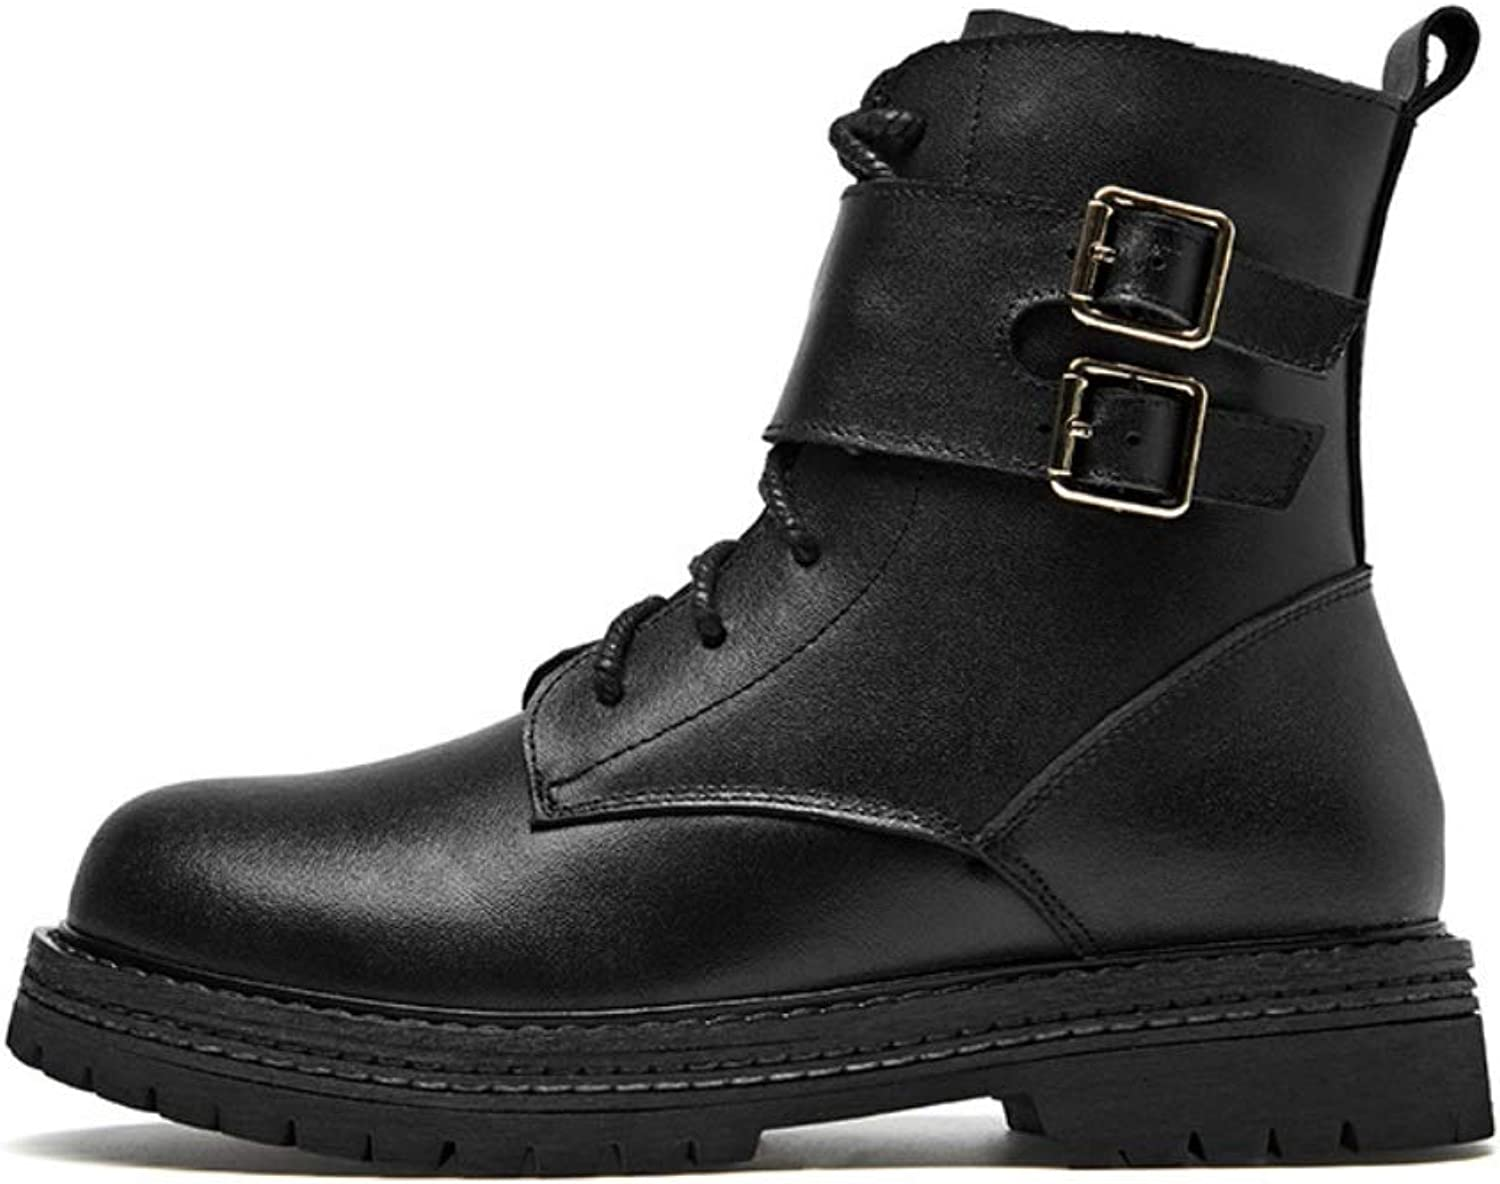 Women Calf Biker Boots Casual Classic Martin Ankle Boots Lace Up Grip Sole Autumn Winter Warm Handmade Army Transer Combat Boots Size